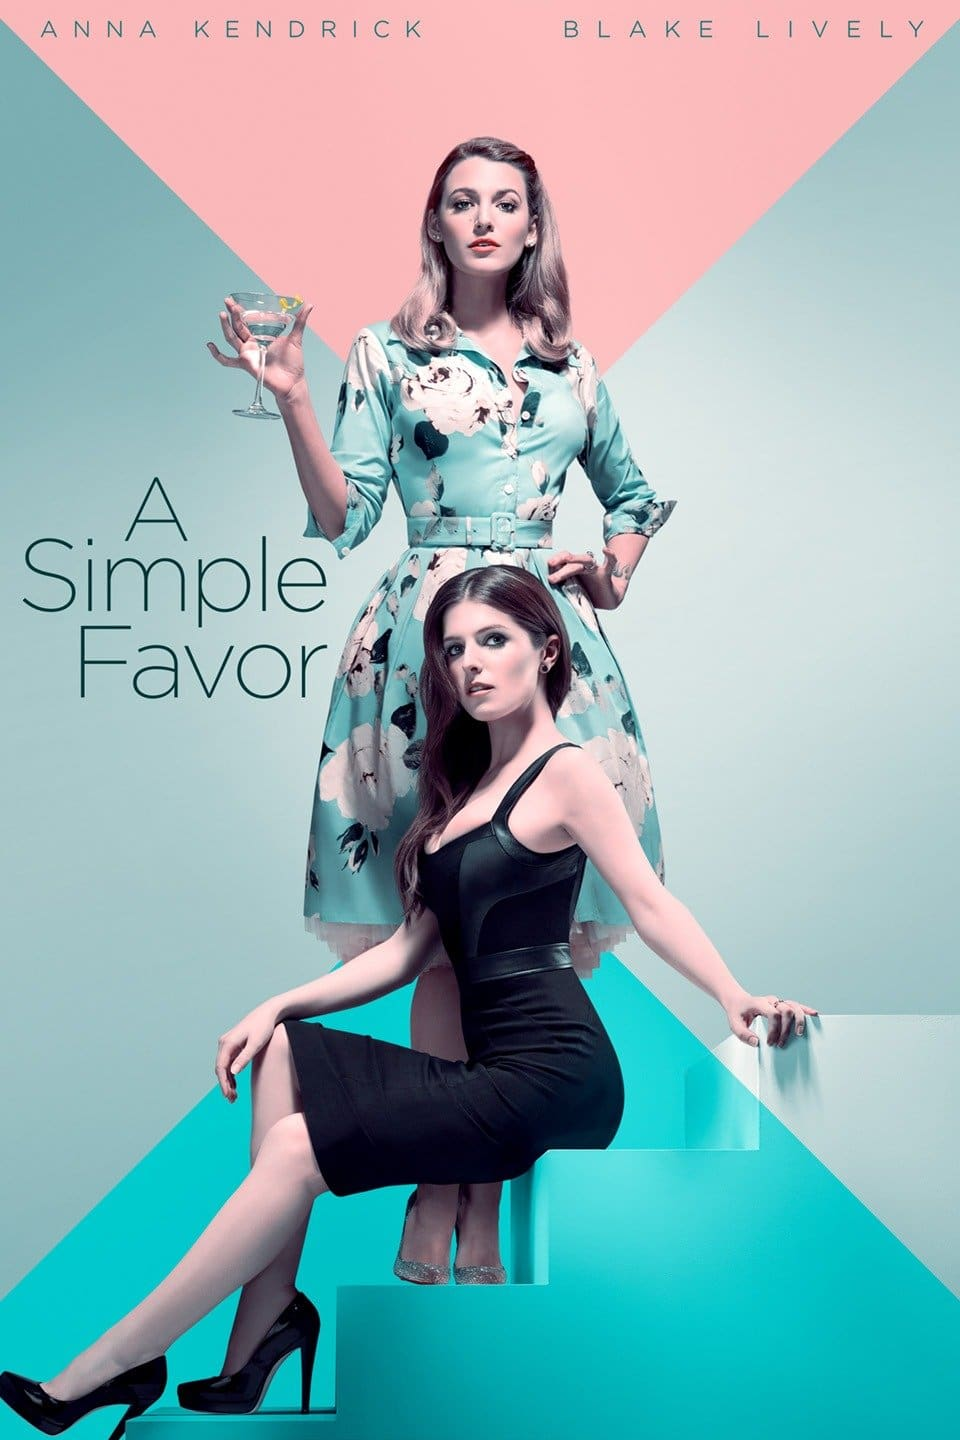 A Simple Favor (2018) - cronică de A.S.